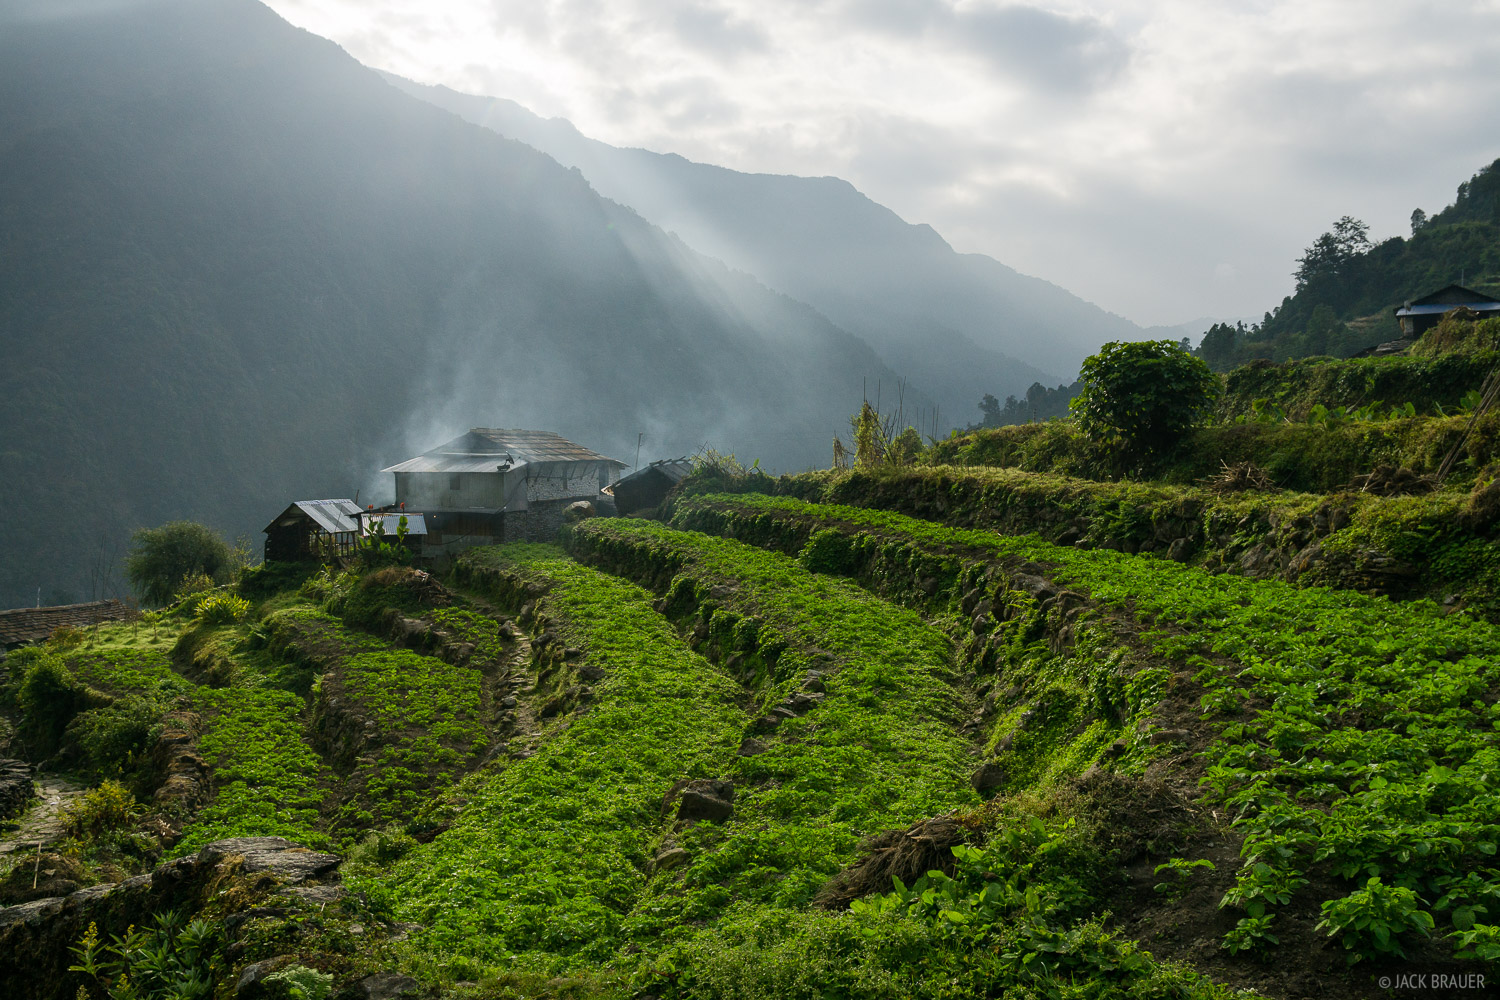 A farmer's terraces in Chomrong. Many houses in Nepal don't use proper stove pipes, so smoke from the stoves just seeps out...